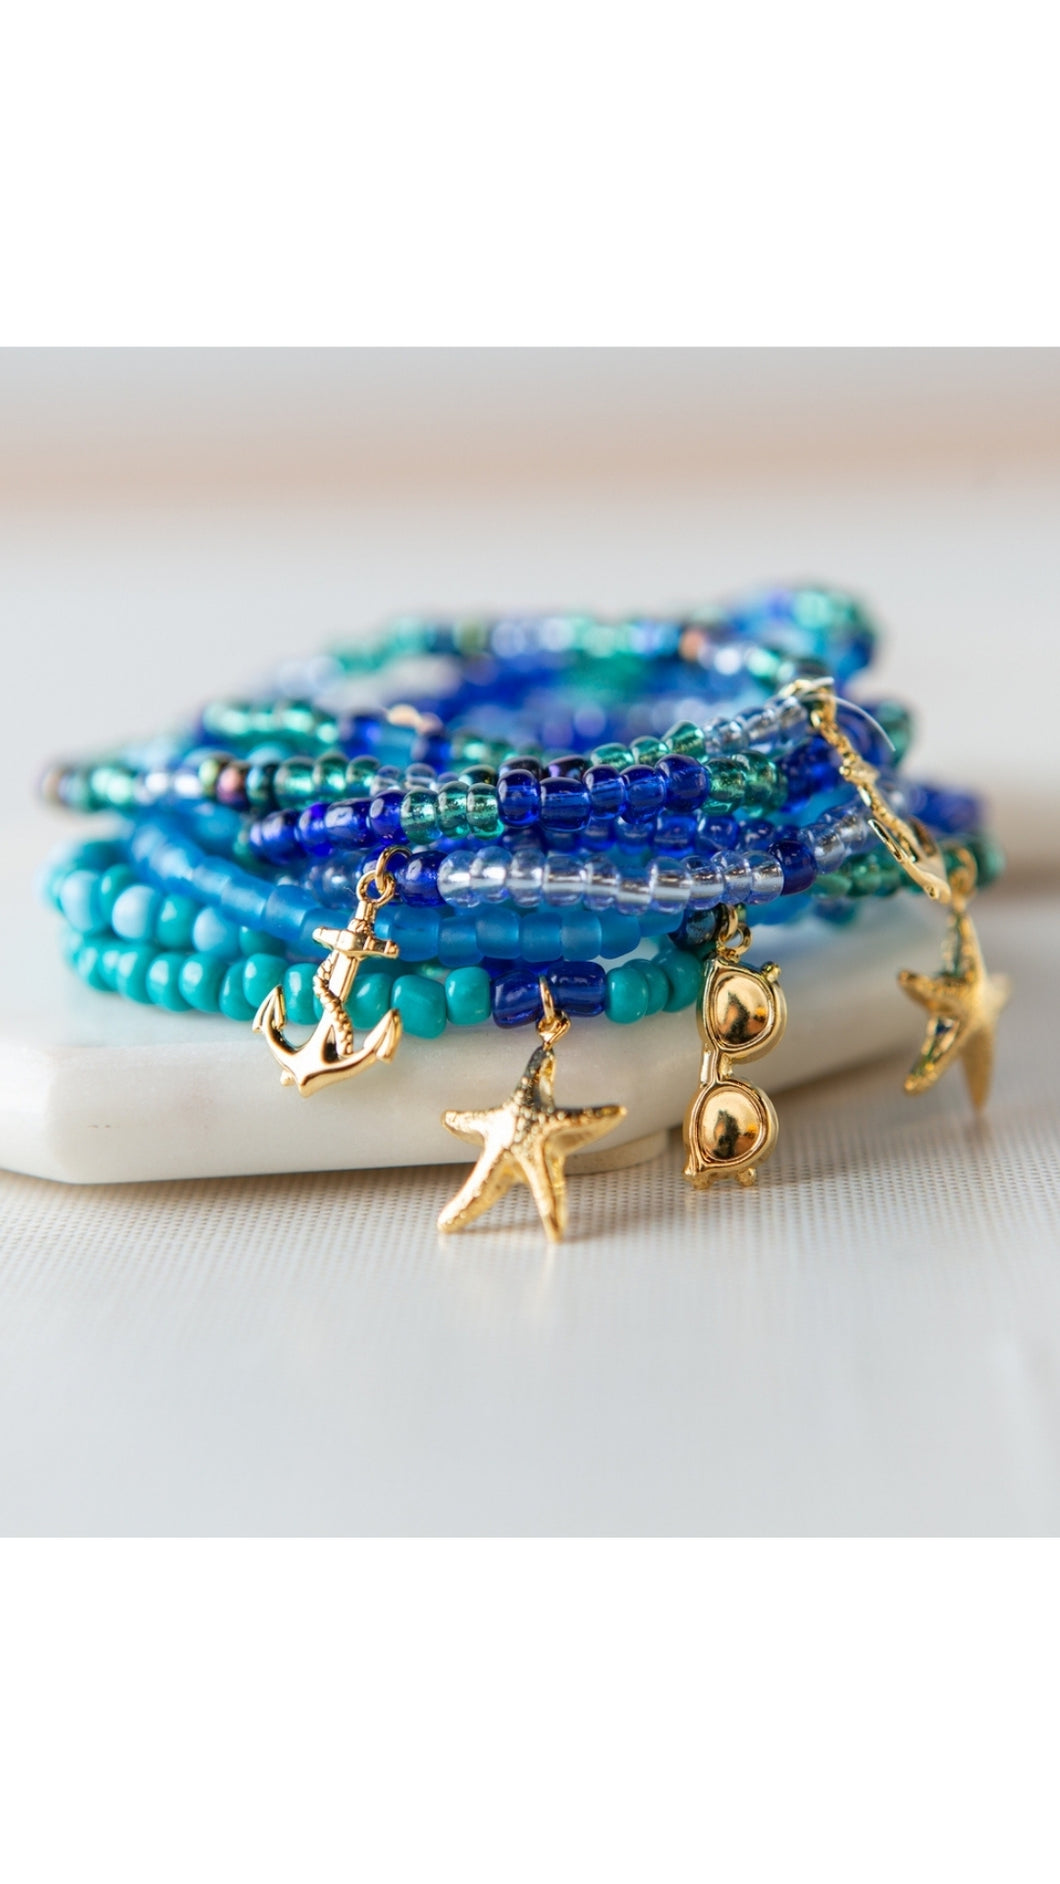 Beachside Bracelet Kit